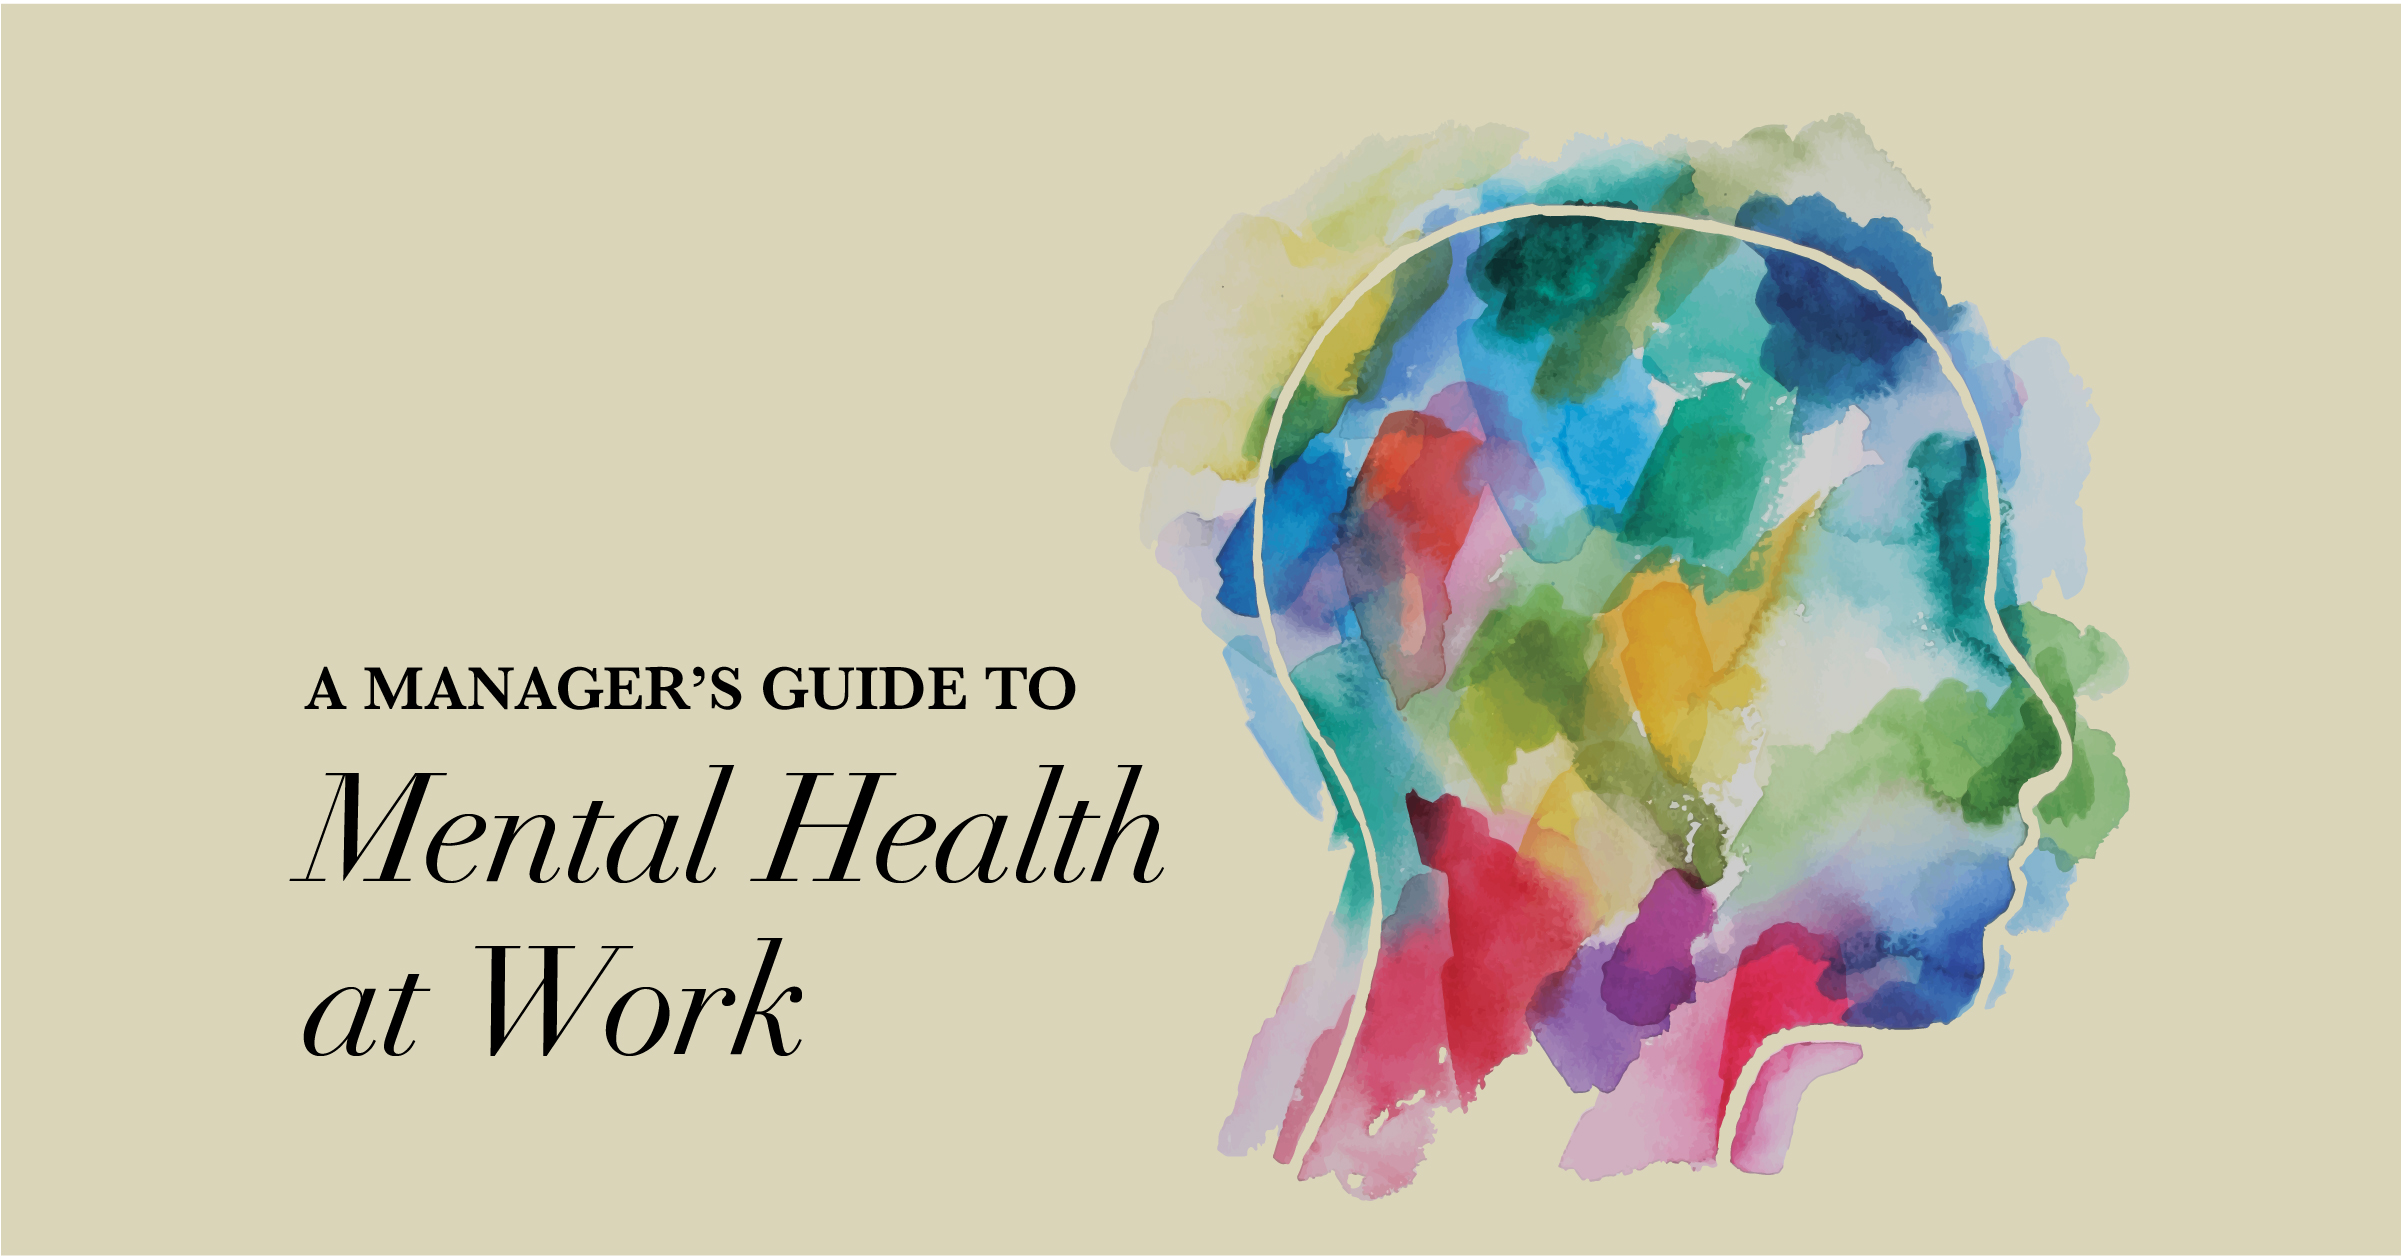 A Managers Guide to Mental Health in the Workplace - When I Work